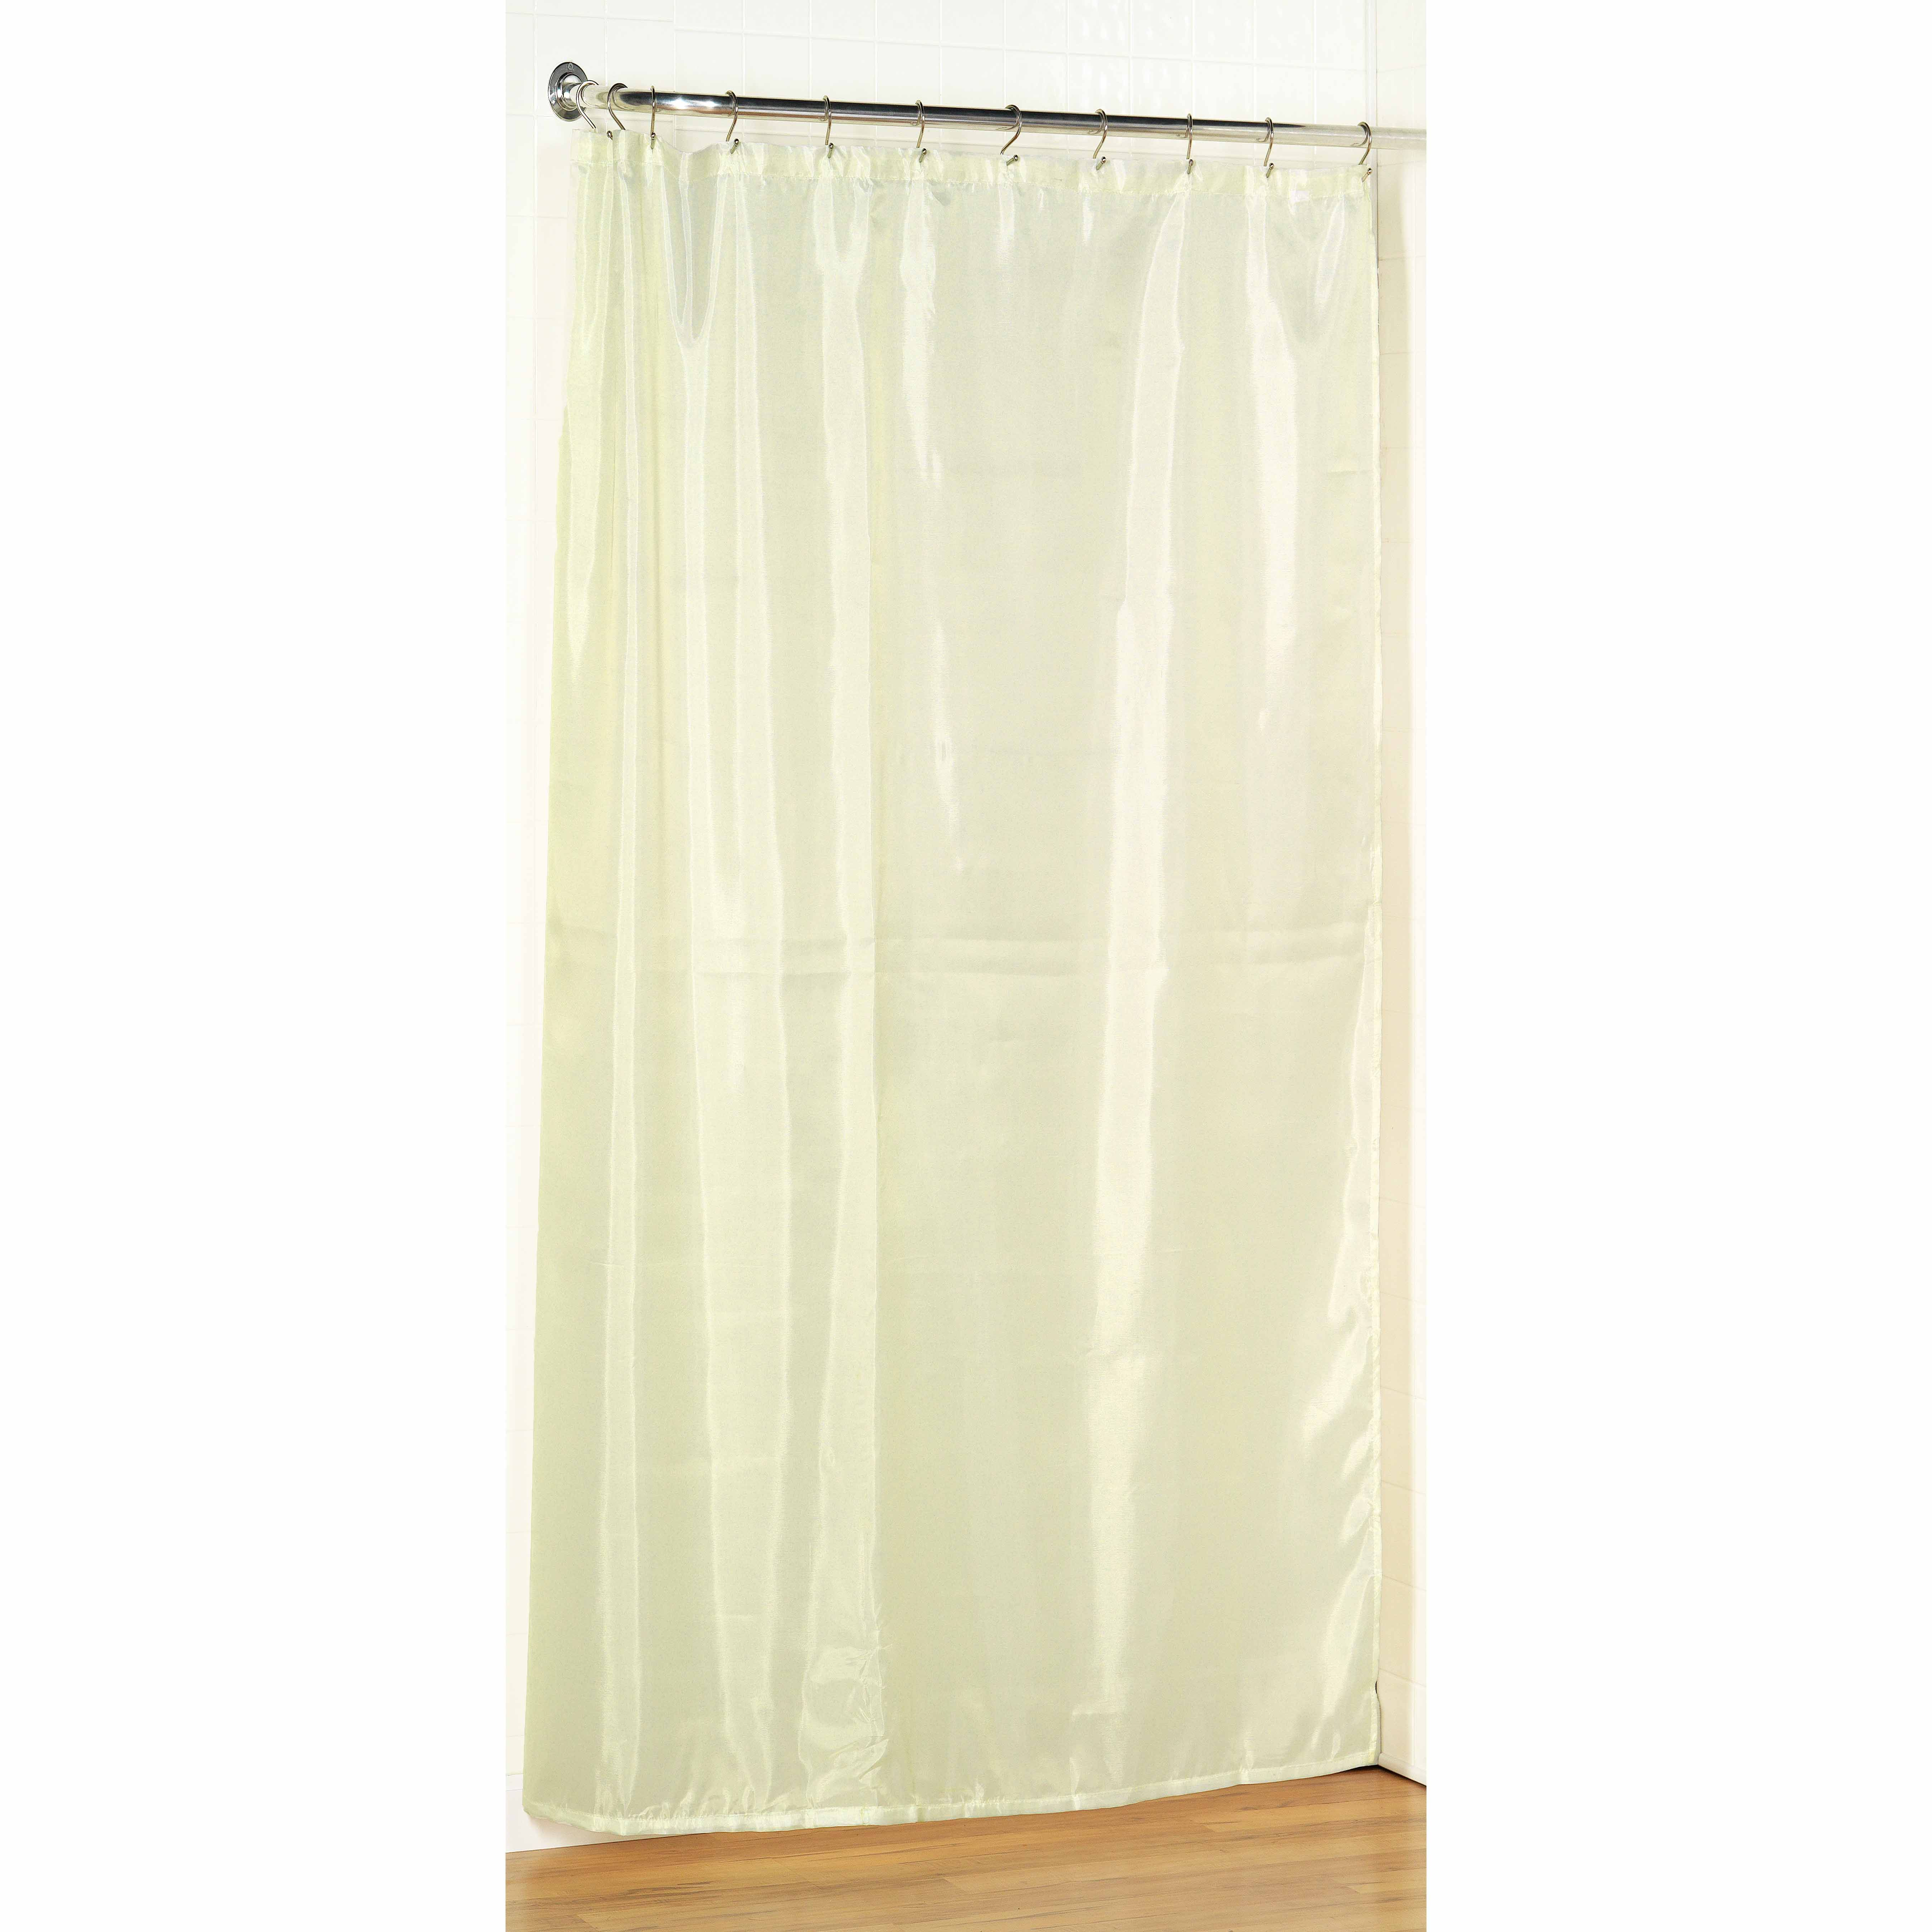 13 Ideas What Size Is A Shower Curtain Should Be